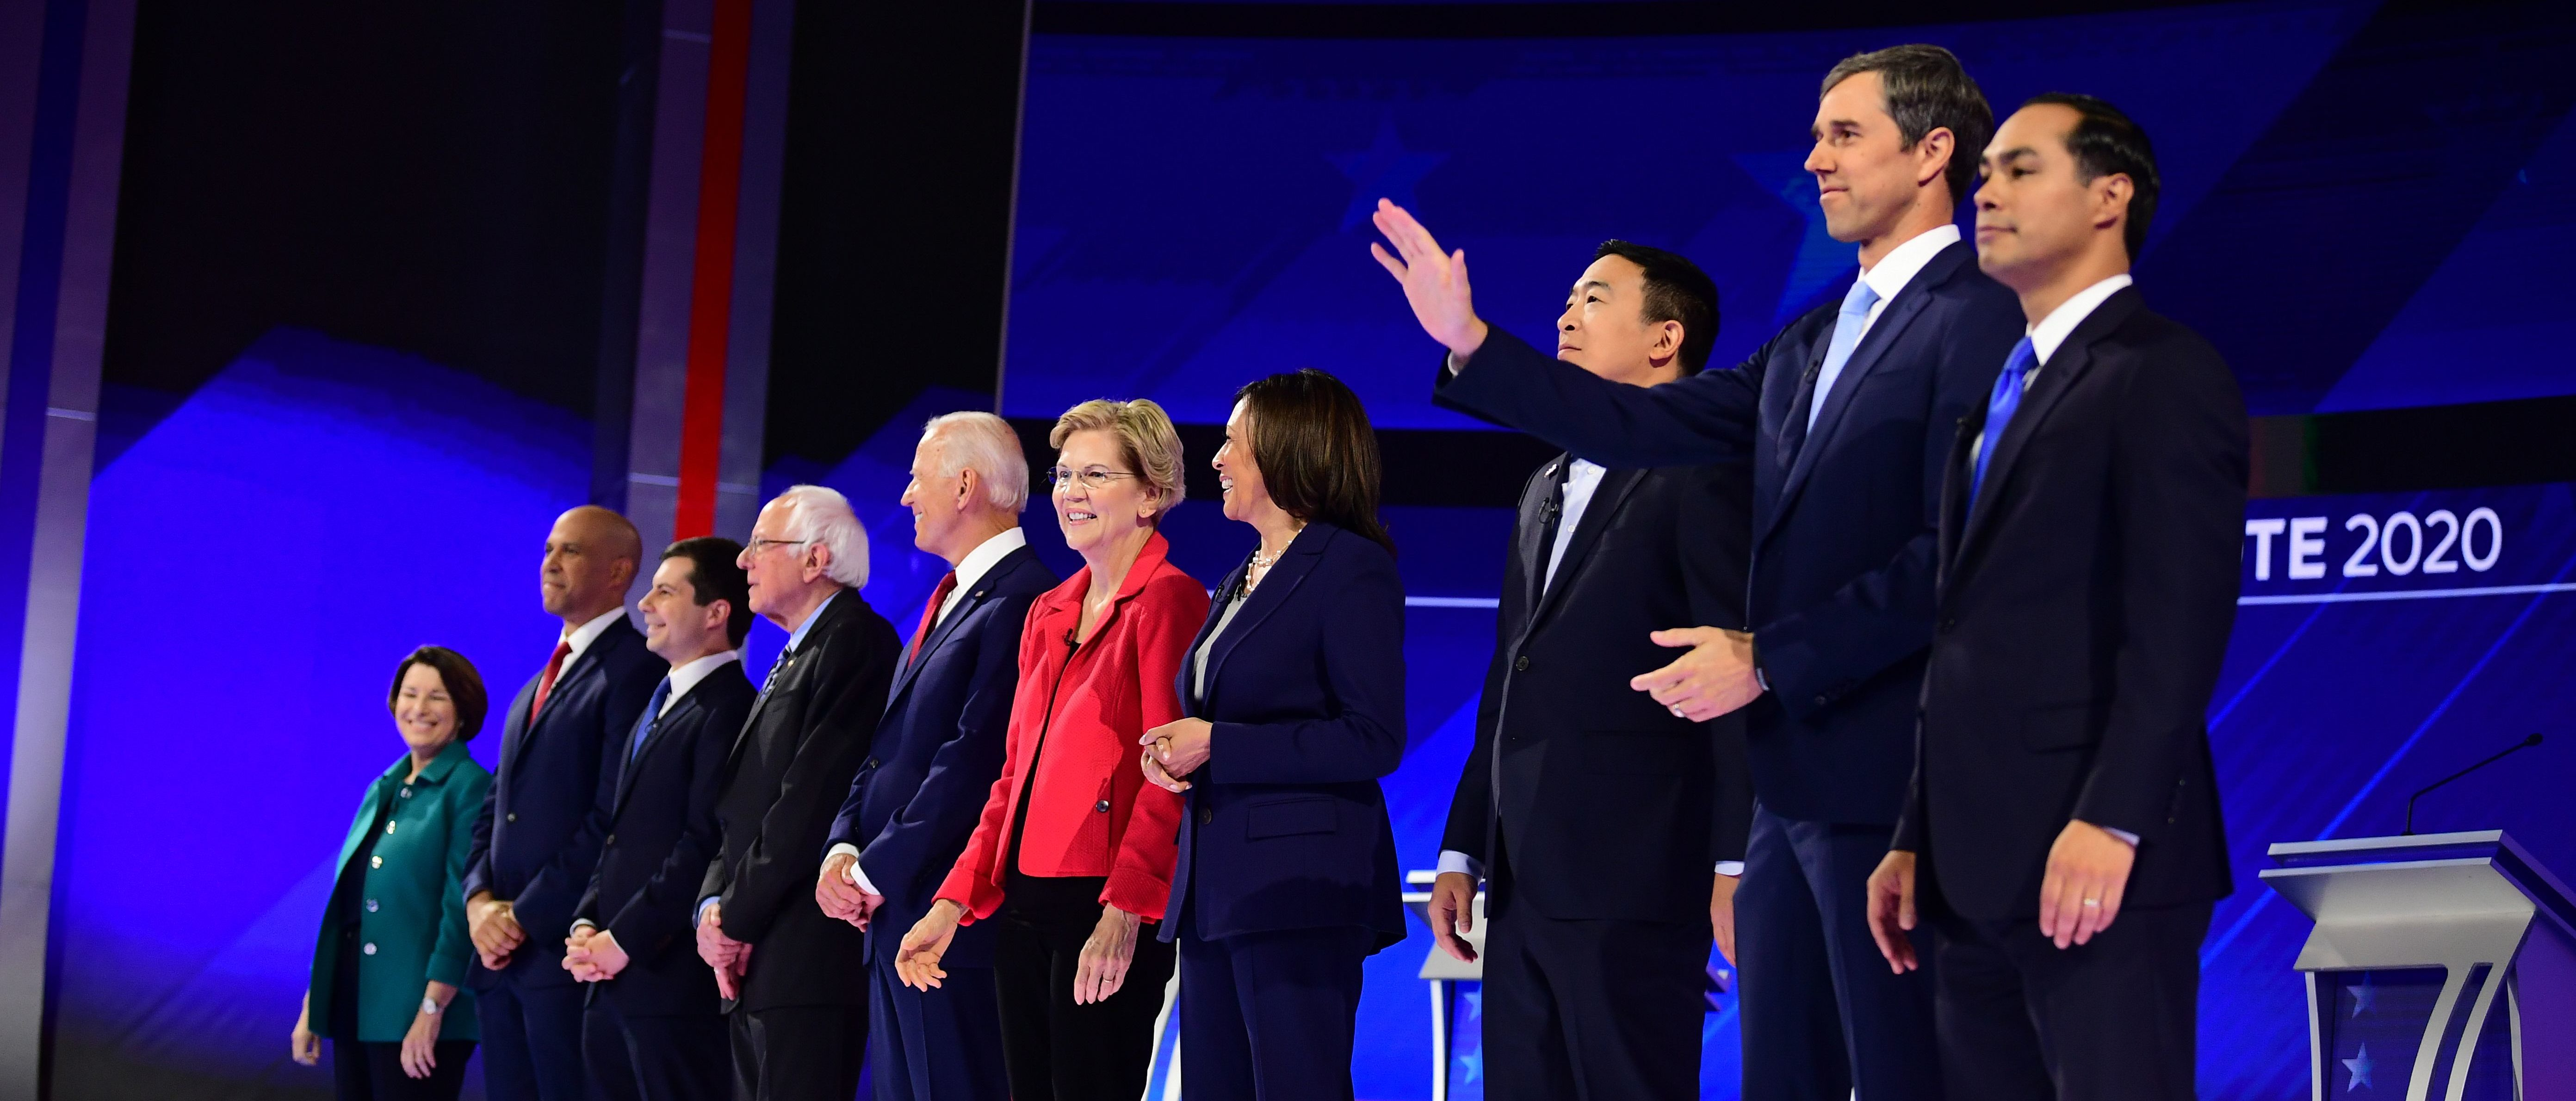 The Ratings Are In For The Democratic Debate